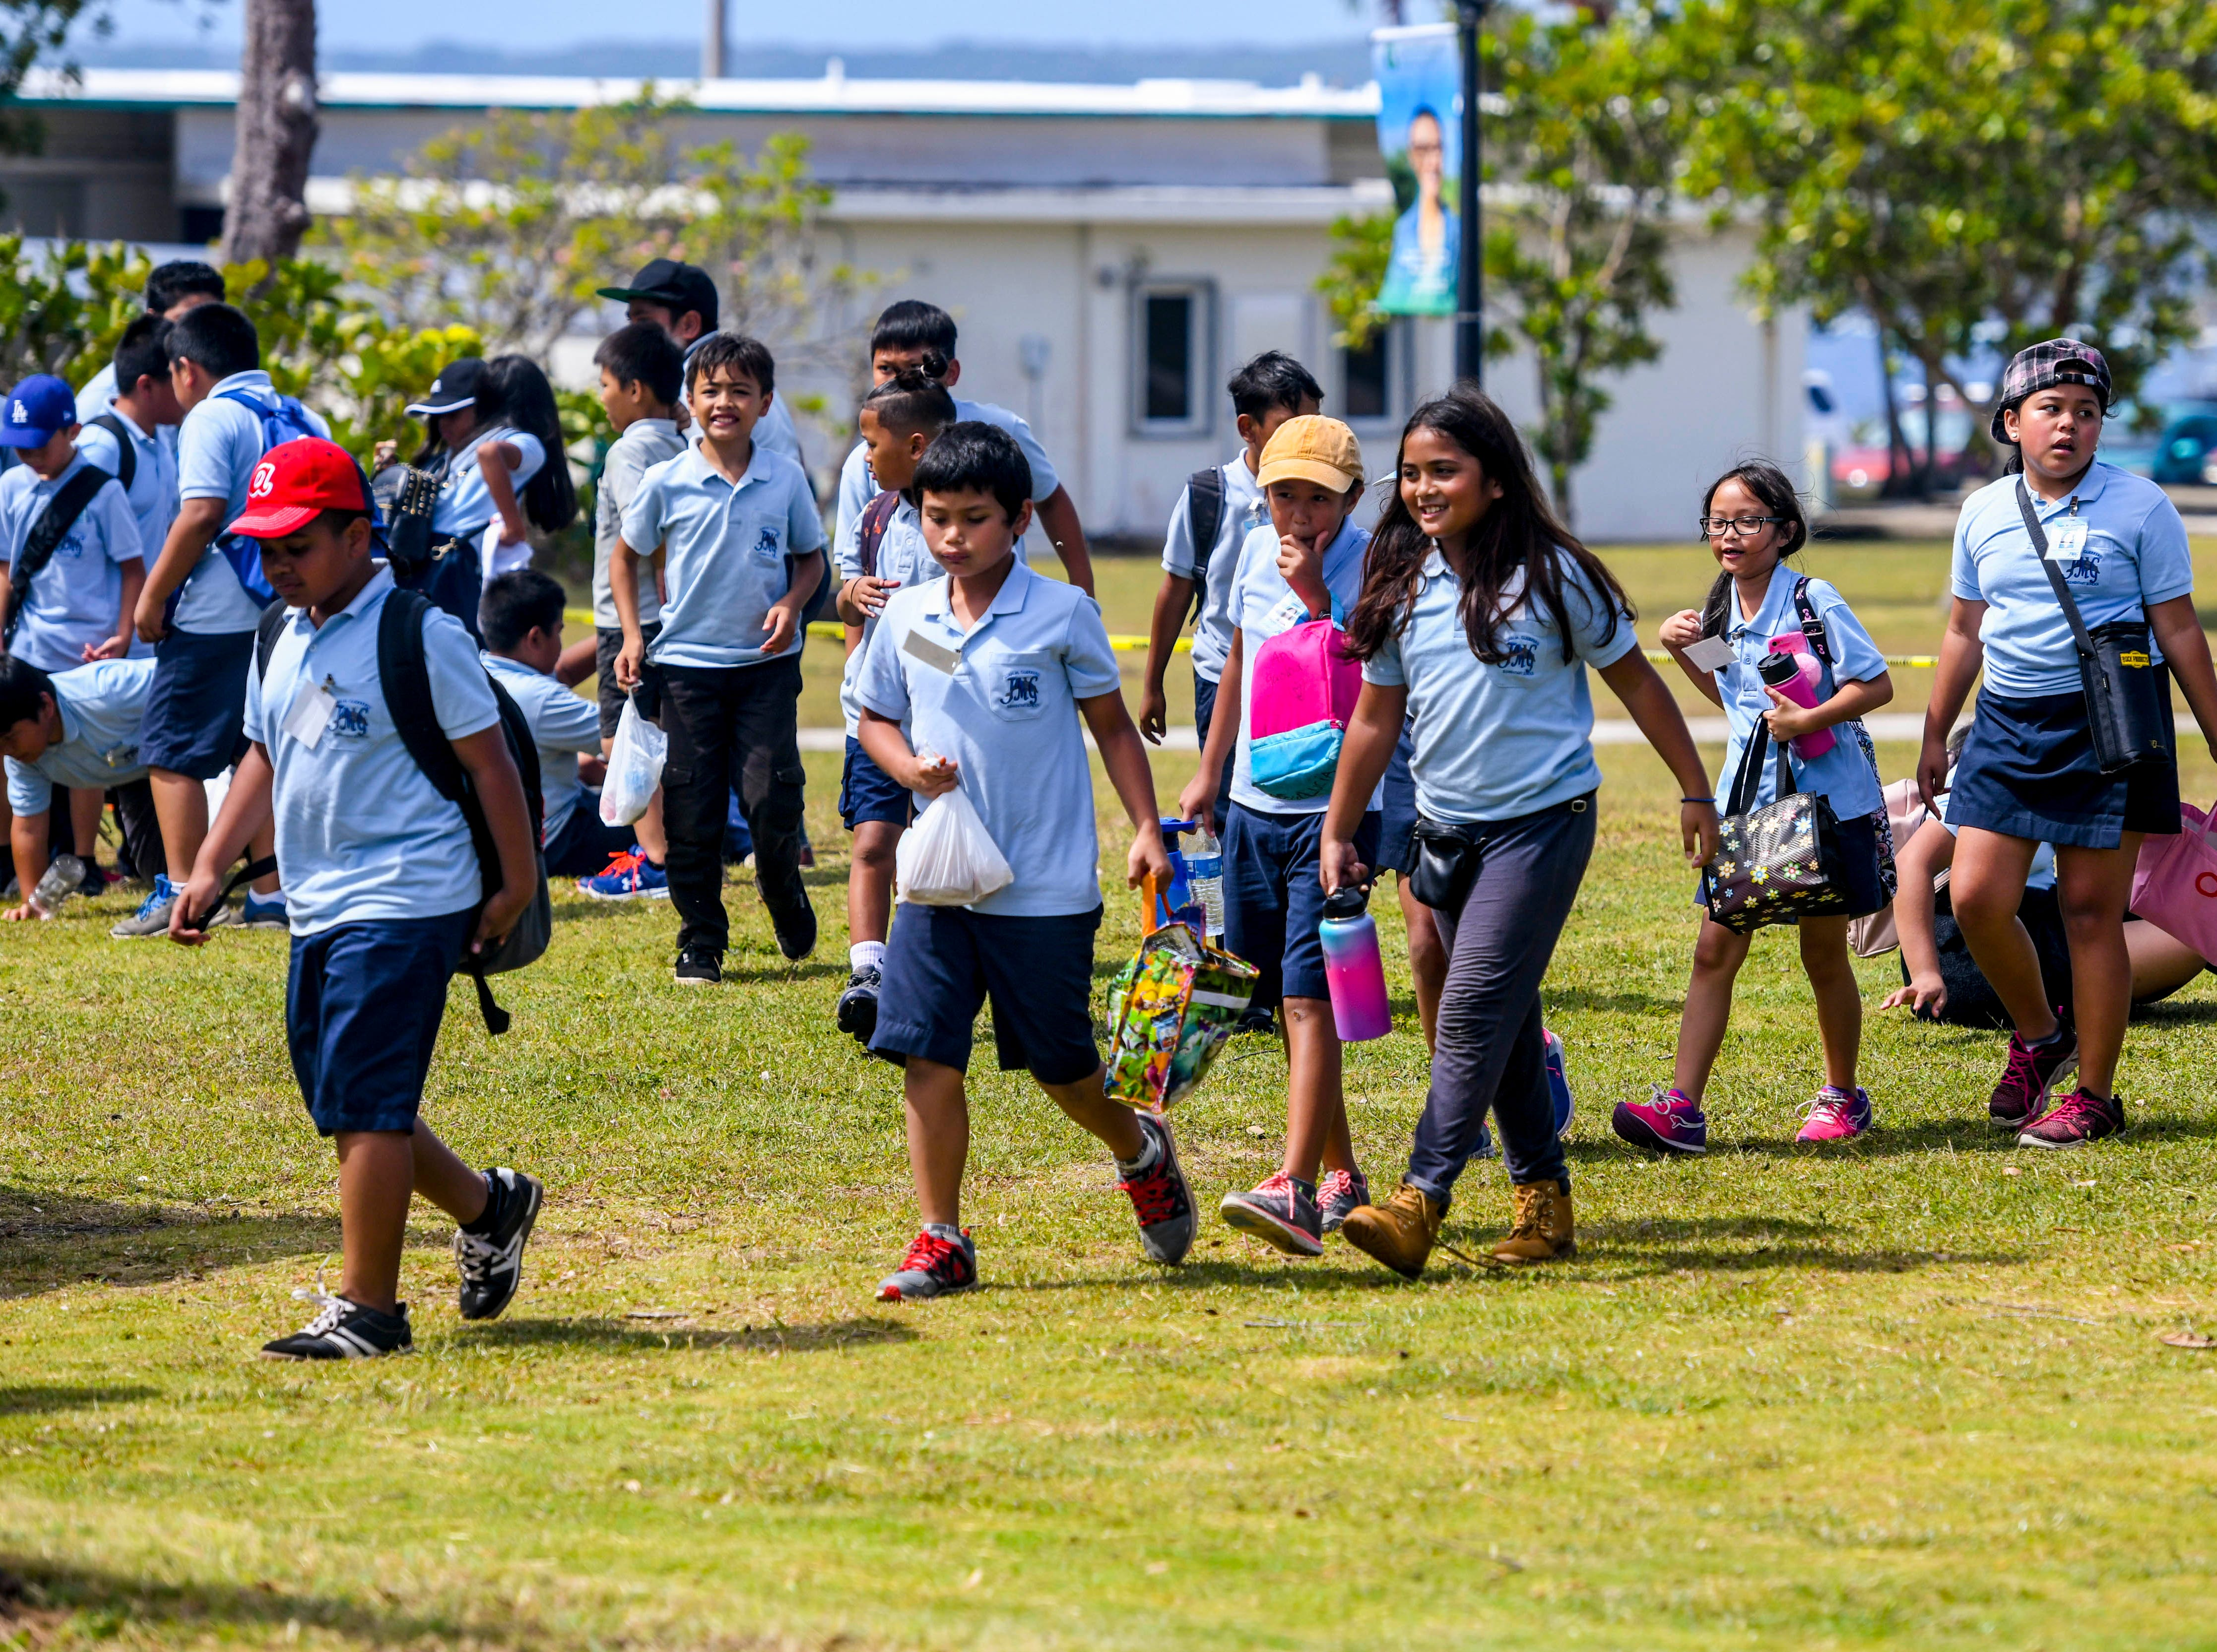 Visiting school student, families, attending students and others, came out to Mangilao to join the celebration of the University of Guam's 51st Charter Day on Tuesday, March 12, 2019.